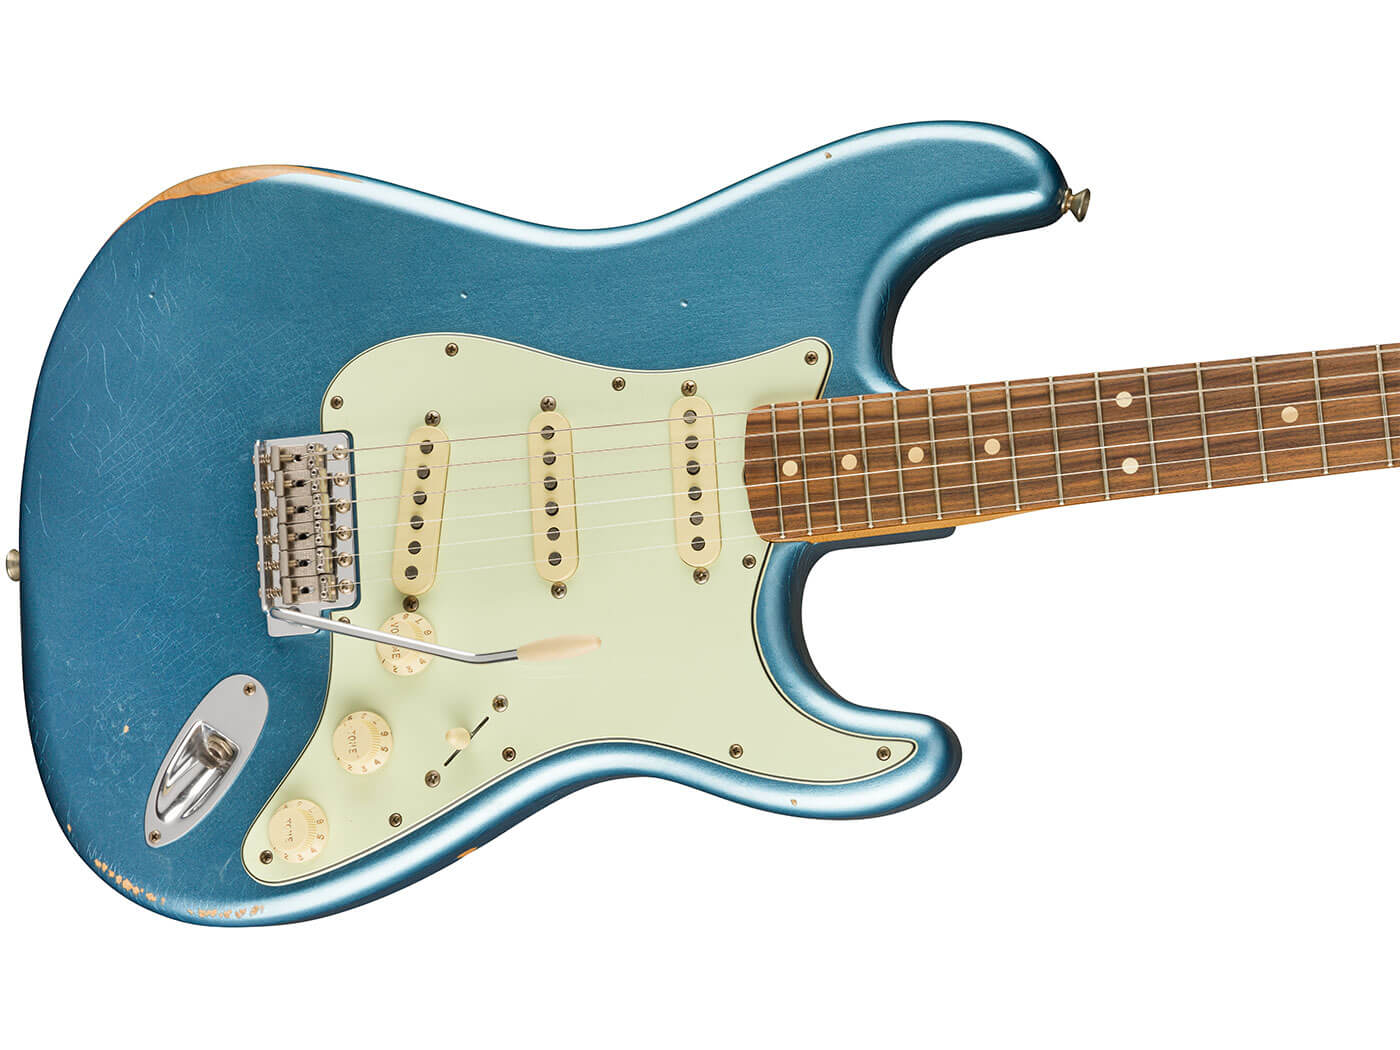 The '60s Strat in Lake Placid Blue.